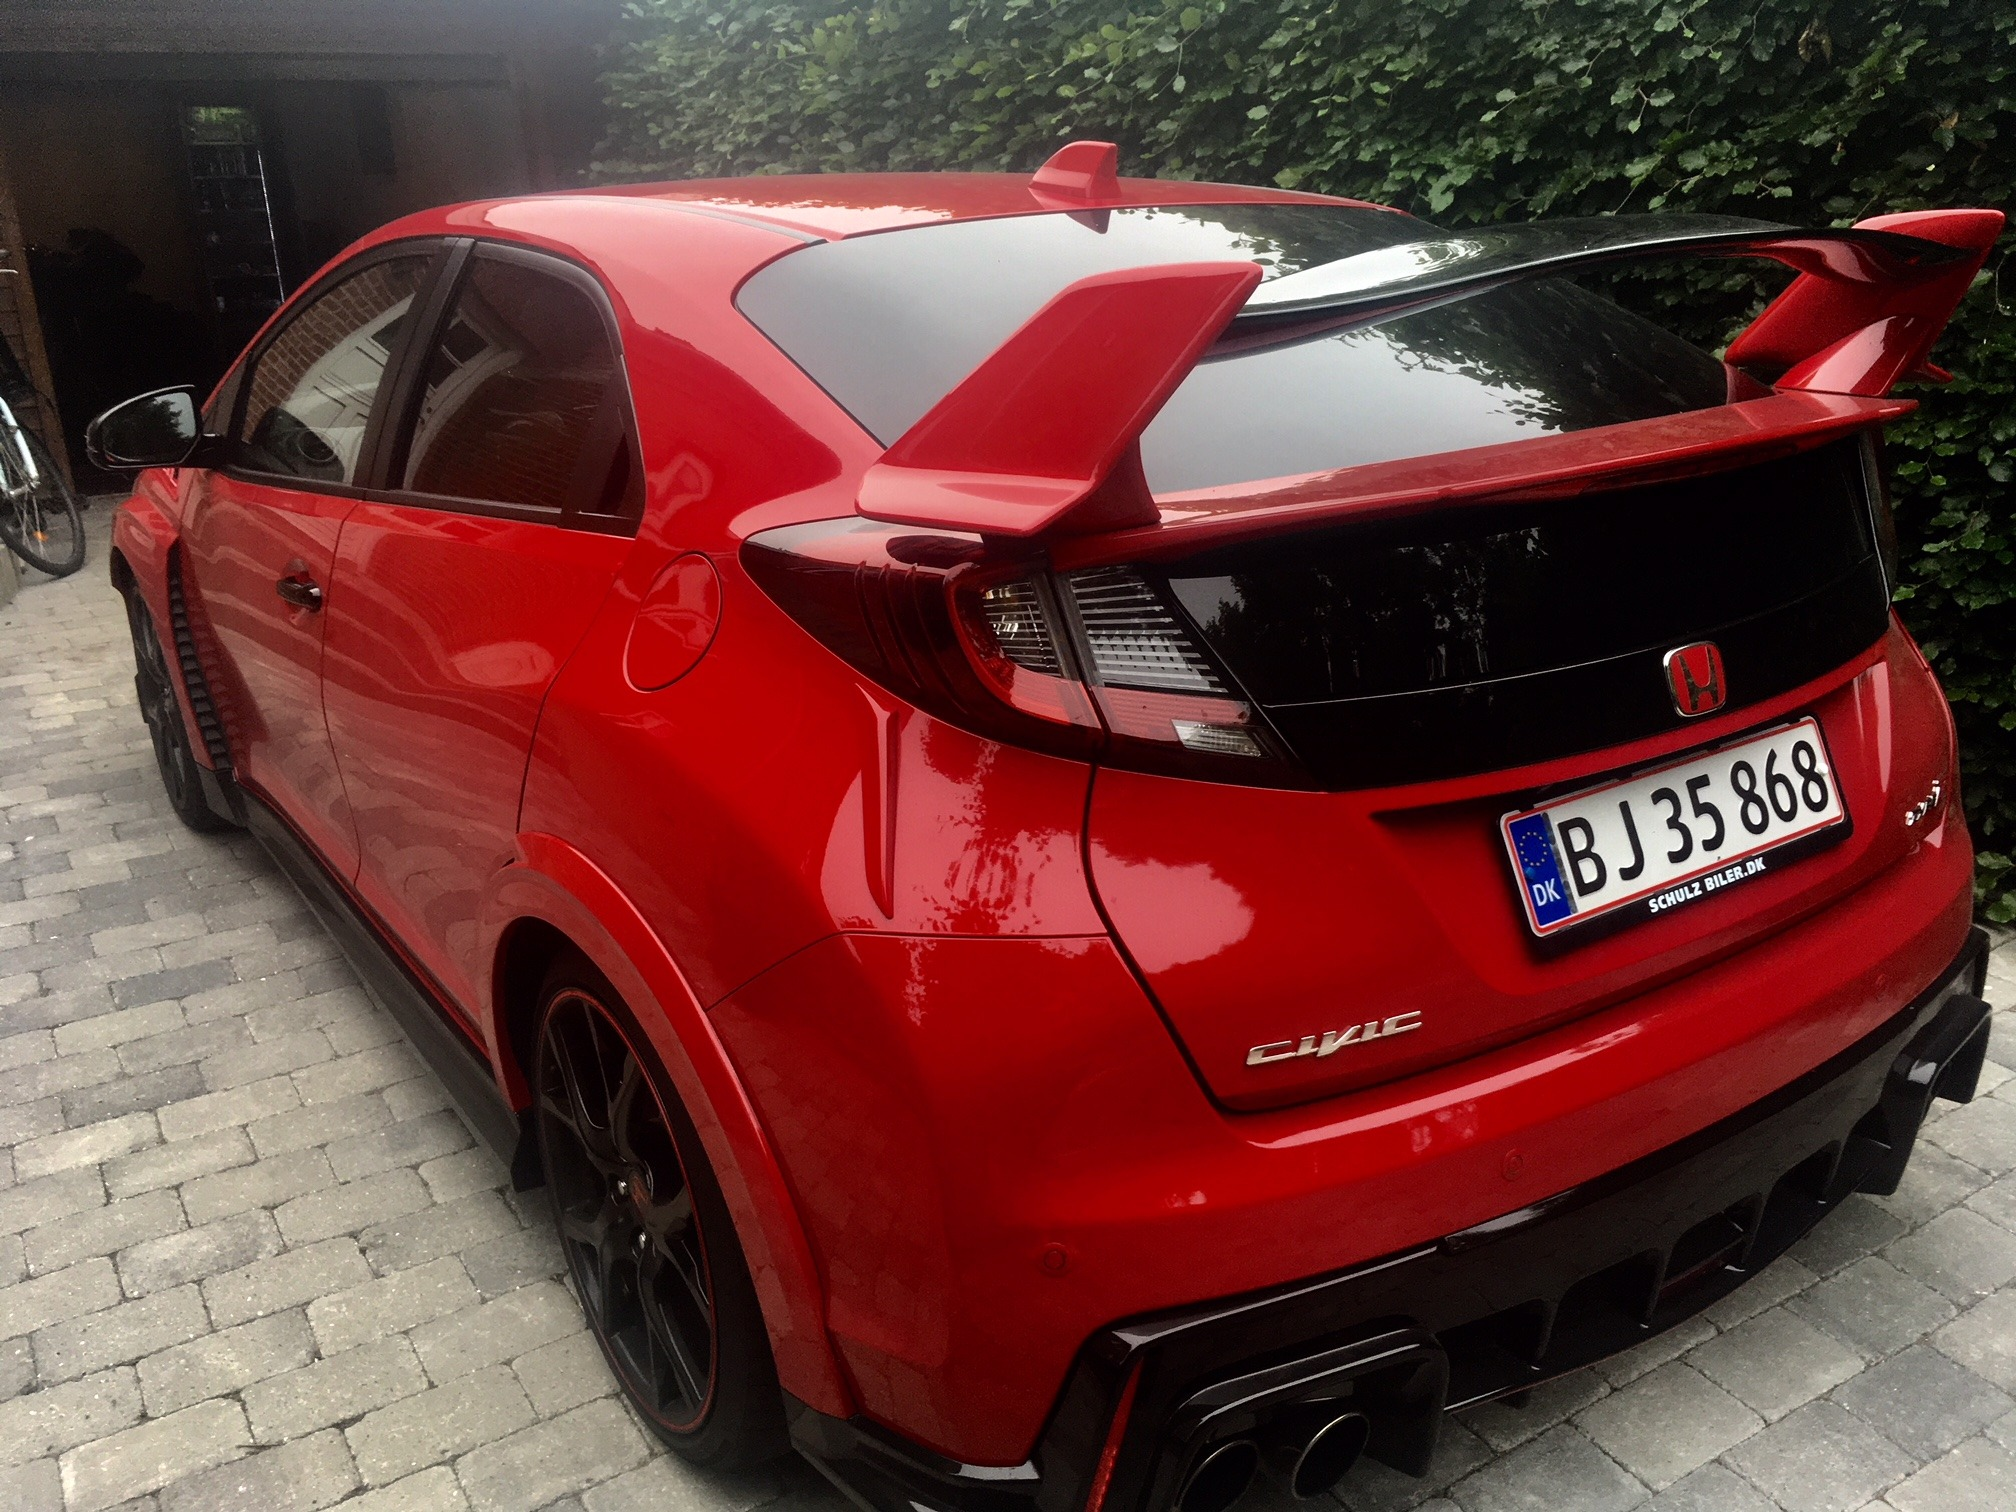 Honda Civic 2.0 VTEC Turbo Type-R, 310 Hk